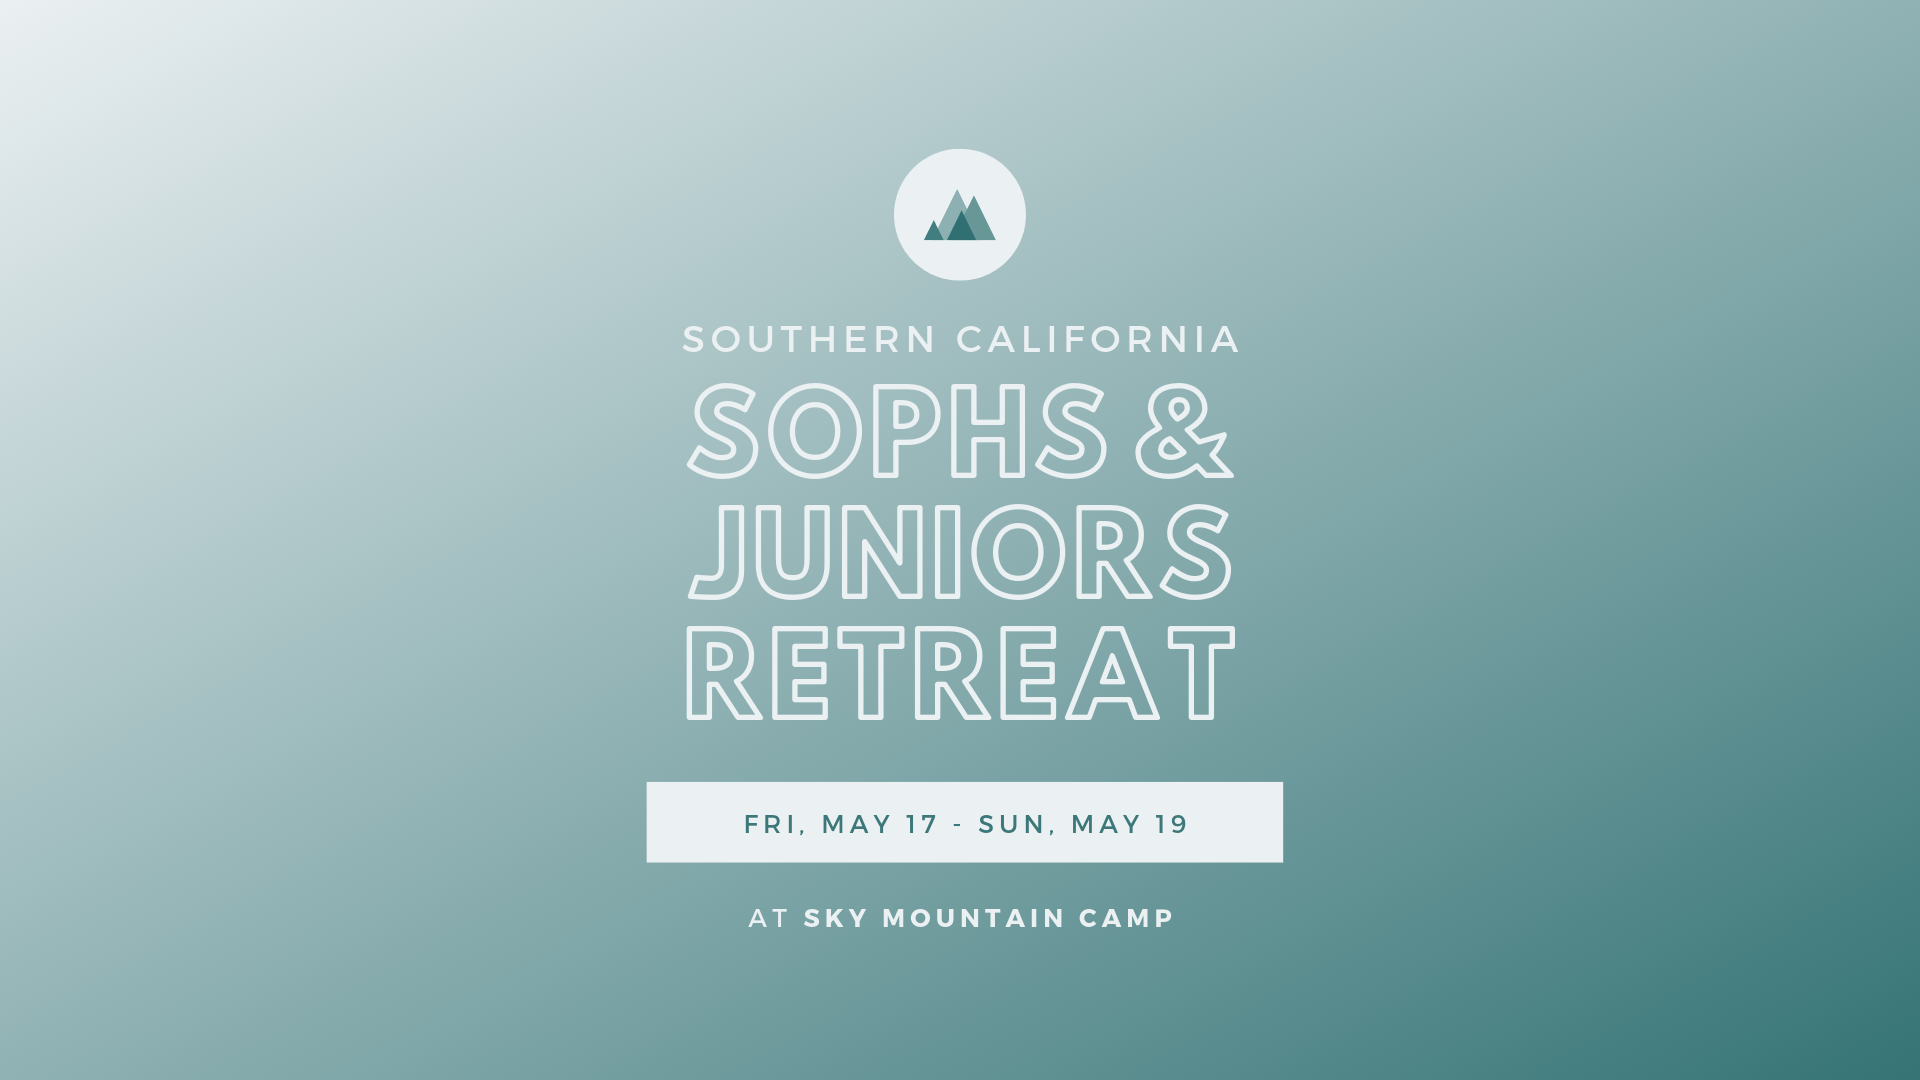 SophsJuniorsRetreat - Spring 2019.png